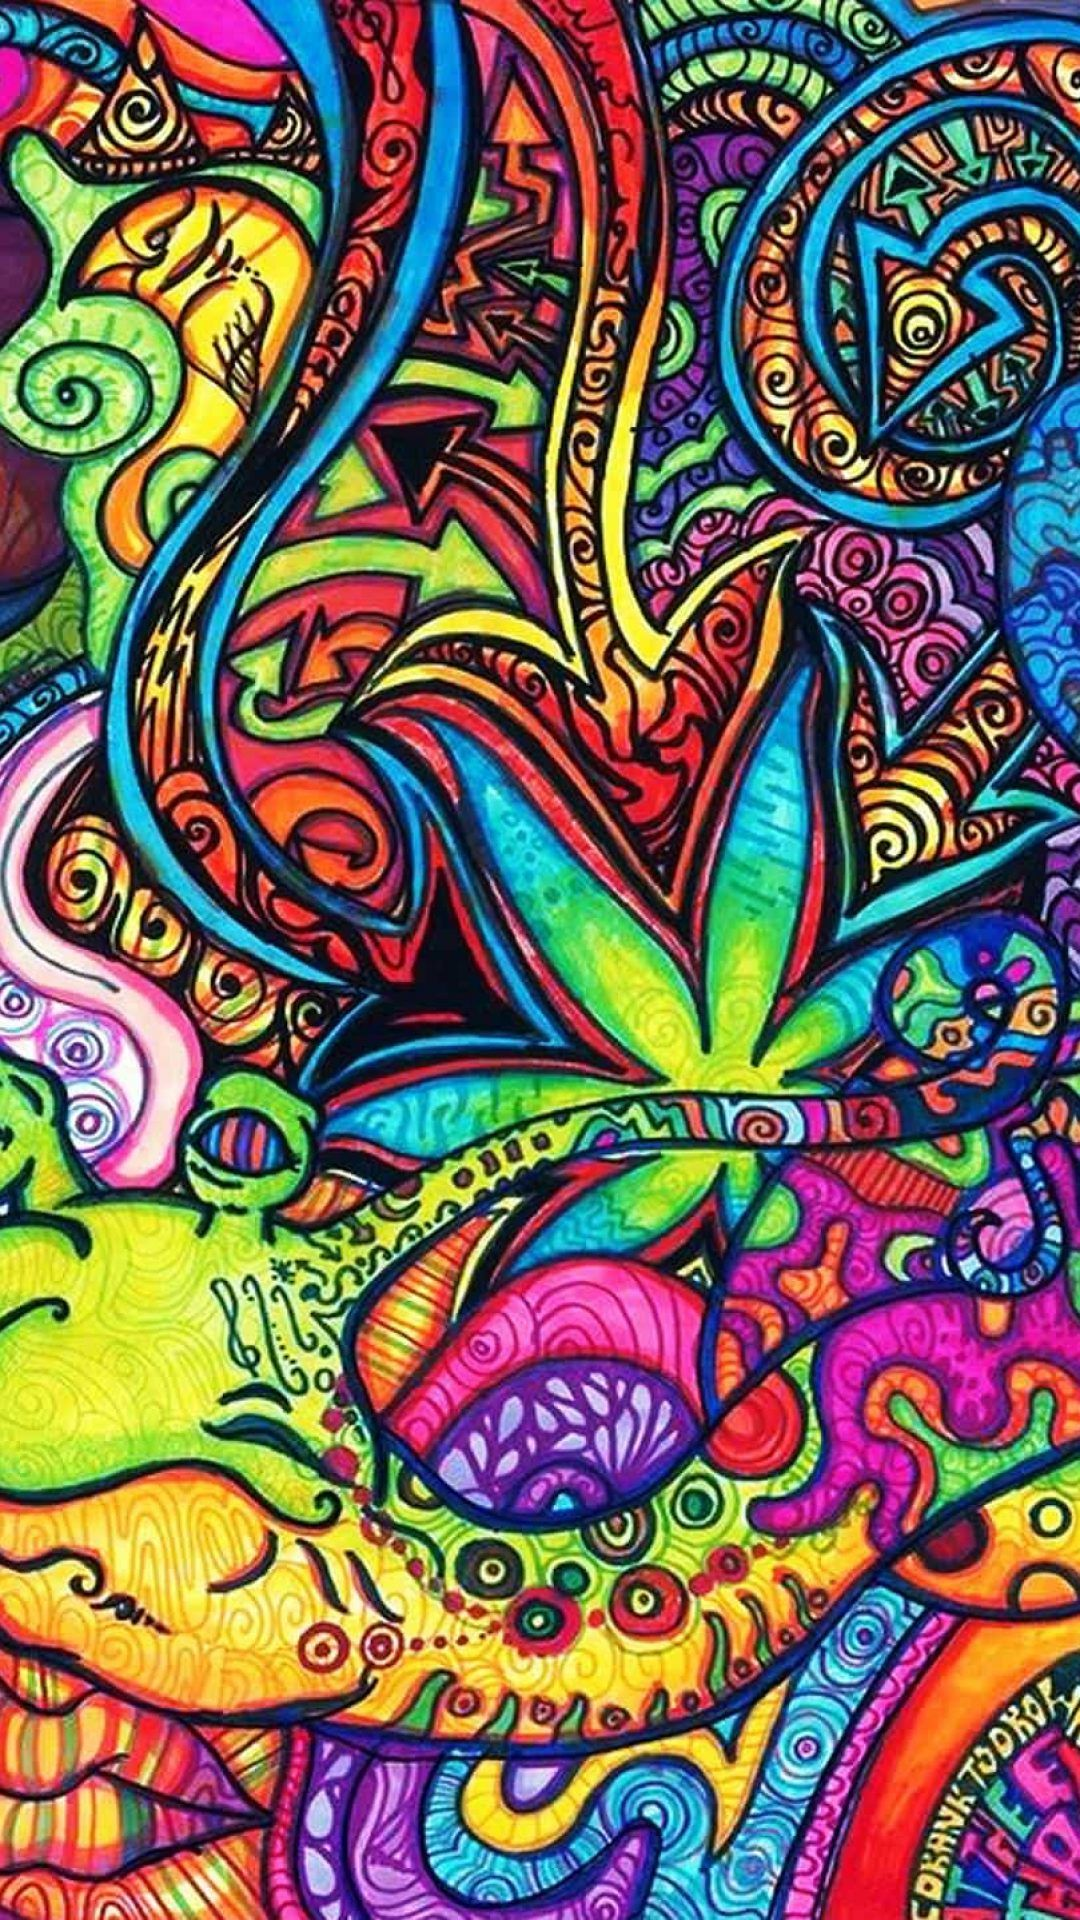 Iphone wallpaper tumblr drugs - Psychedelic Trippy Backgrounds For Desktop Android Iphone Hd